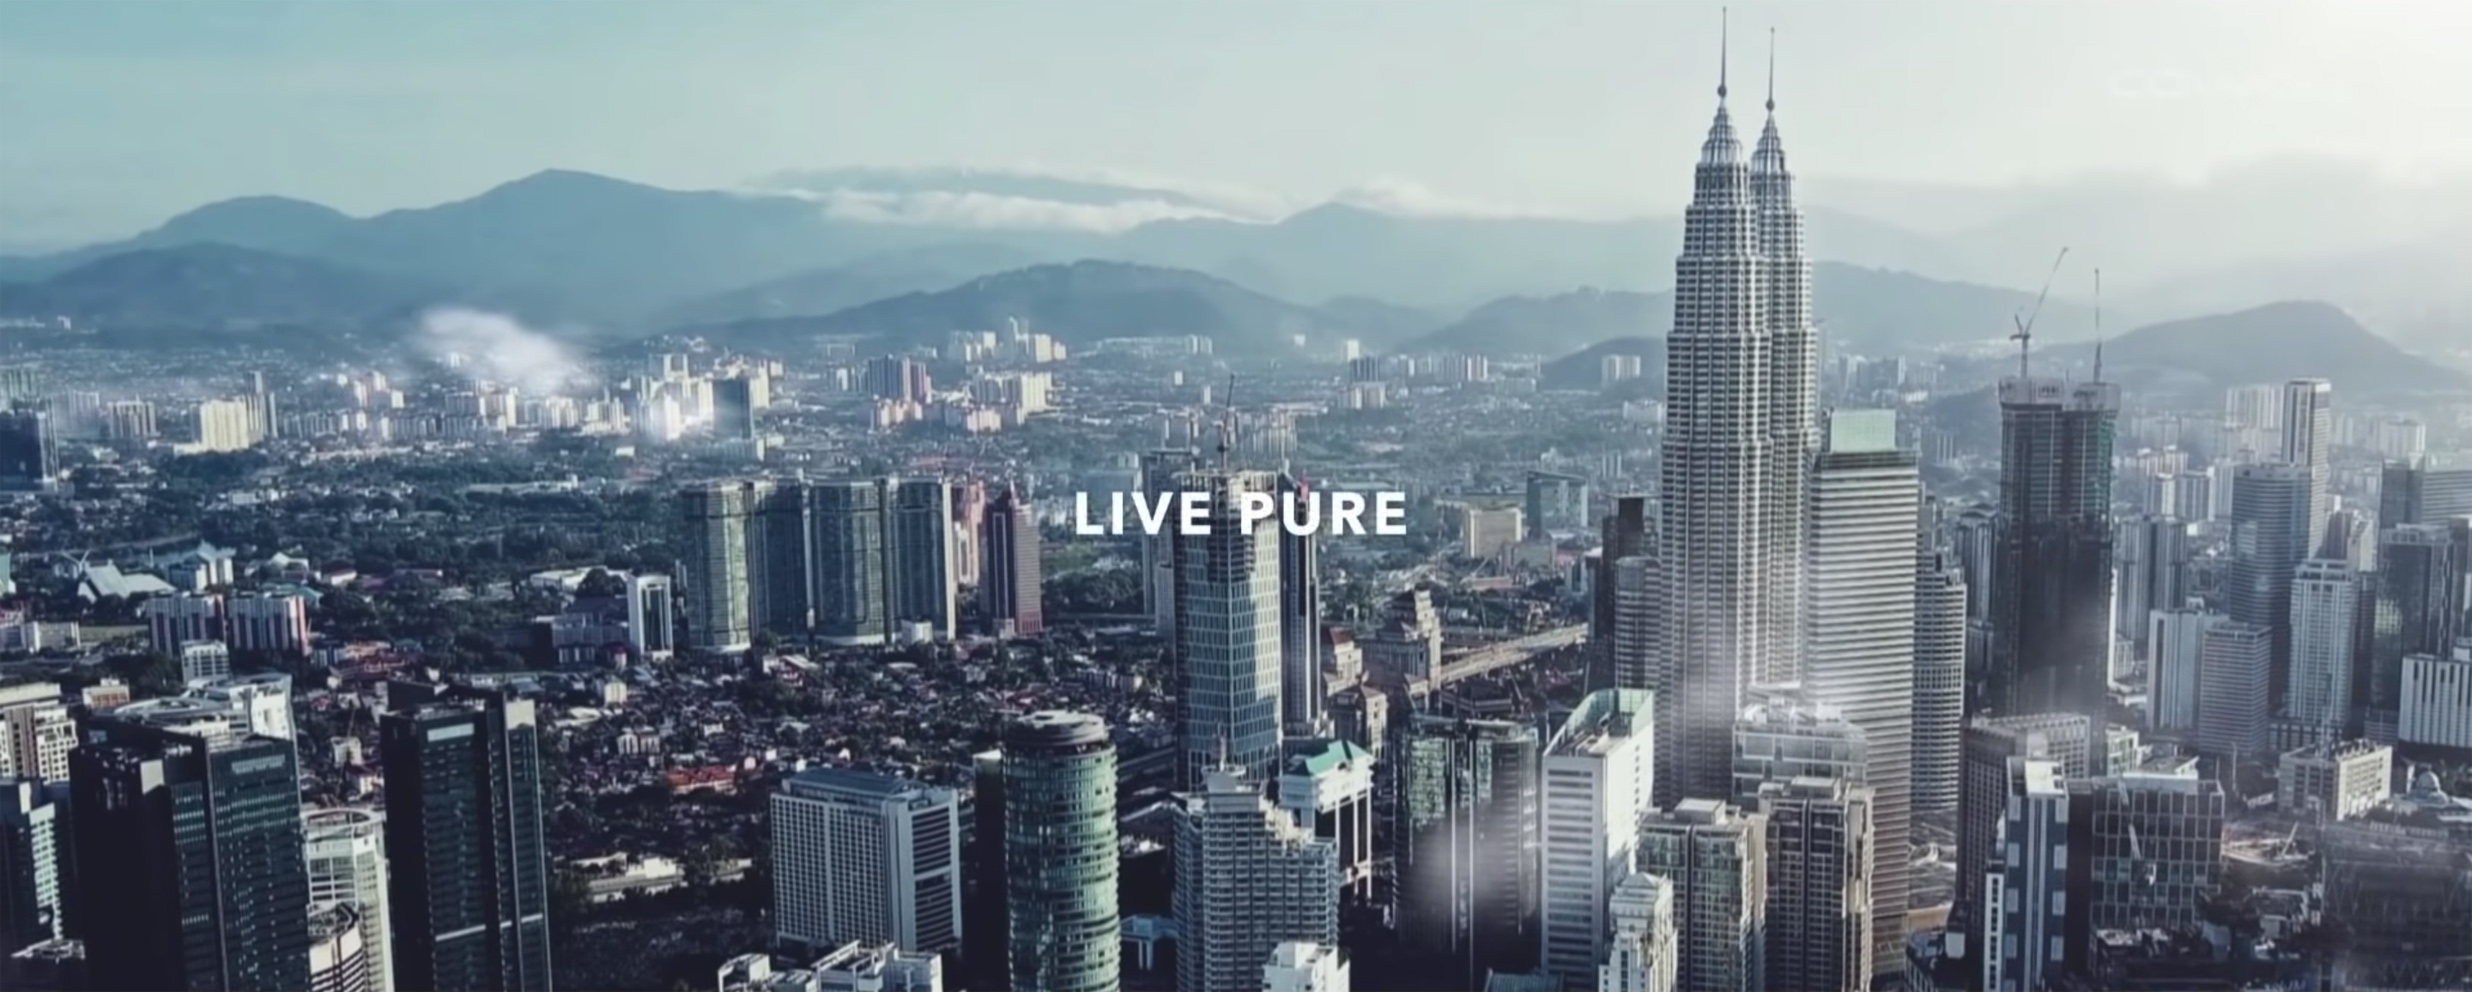 Coway launches new brand film via Grey Malaysia celebrating 1 million customers